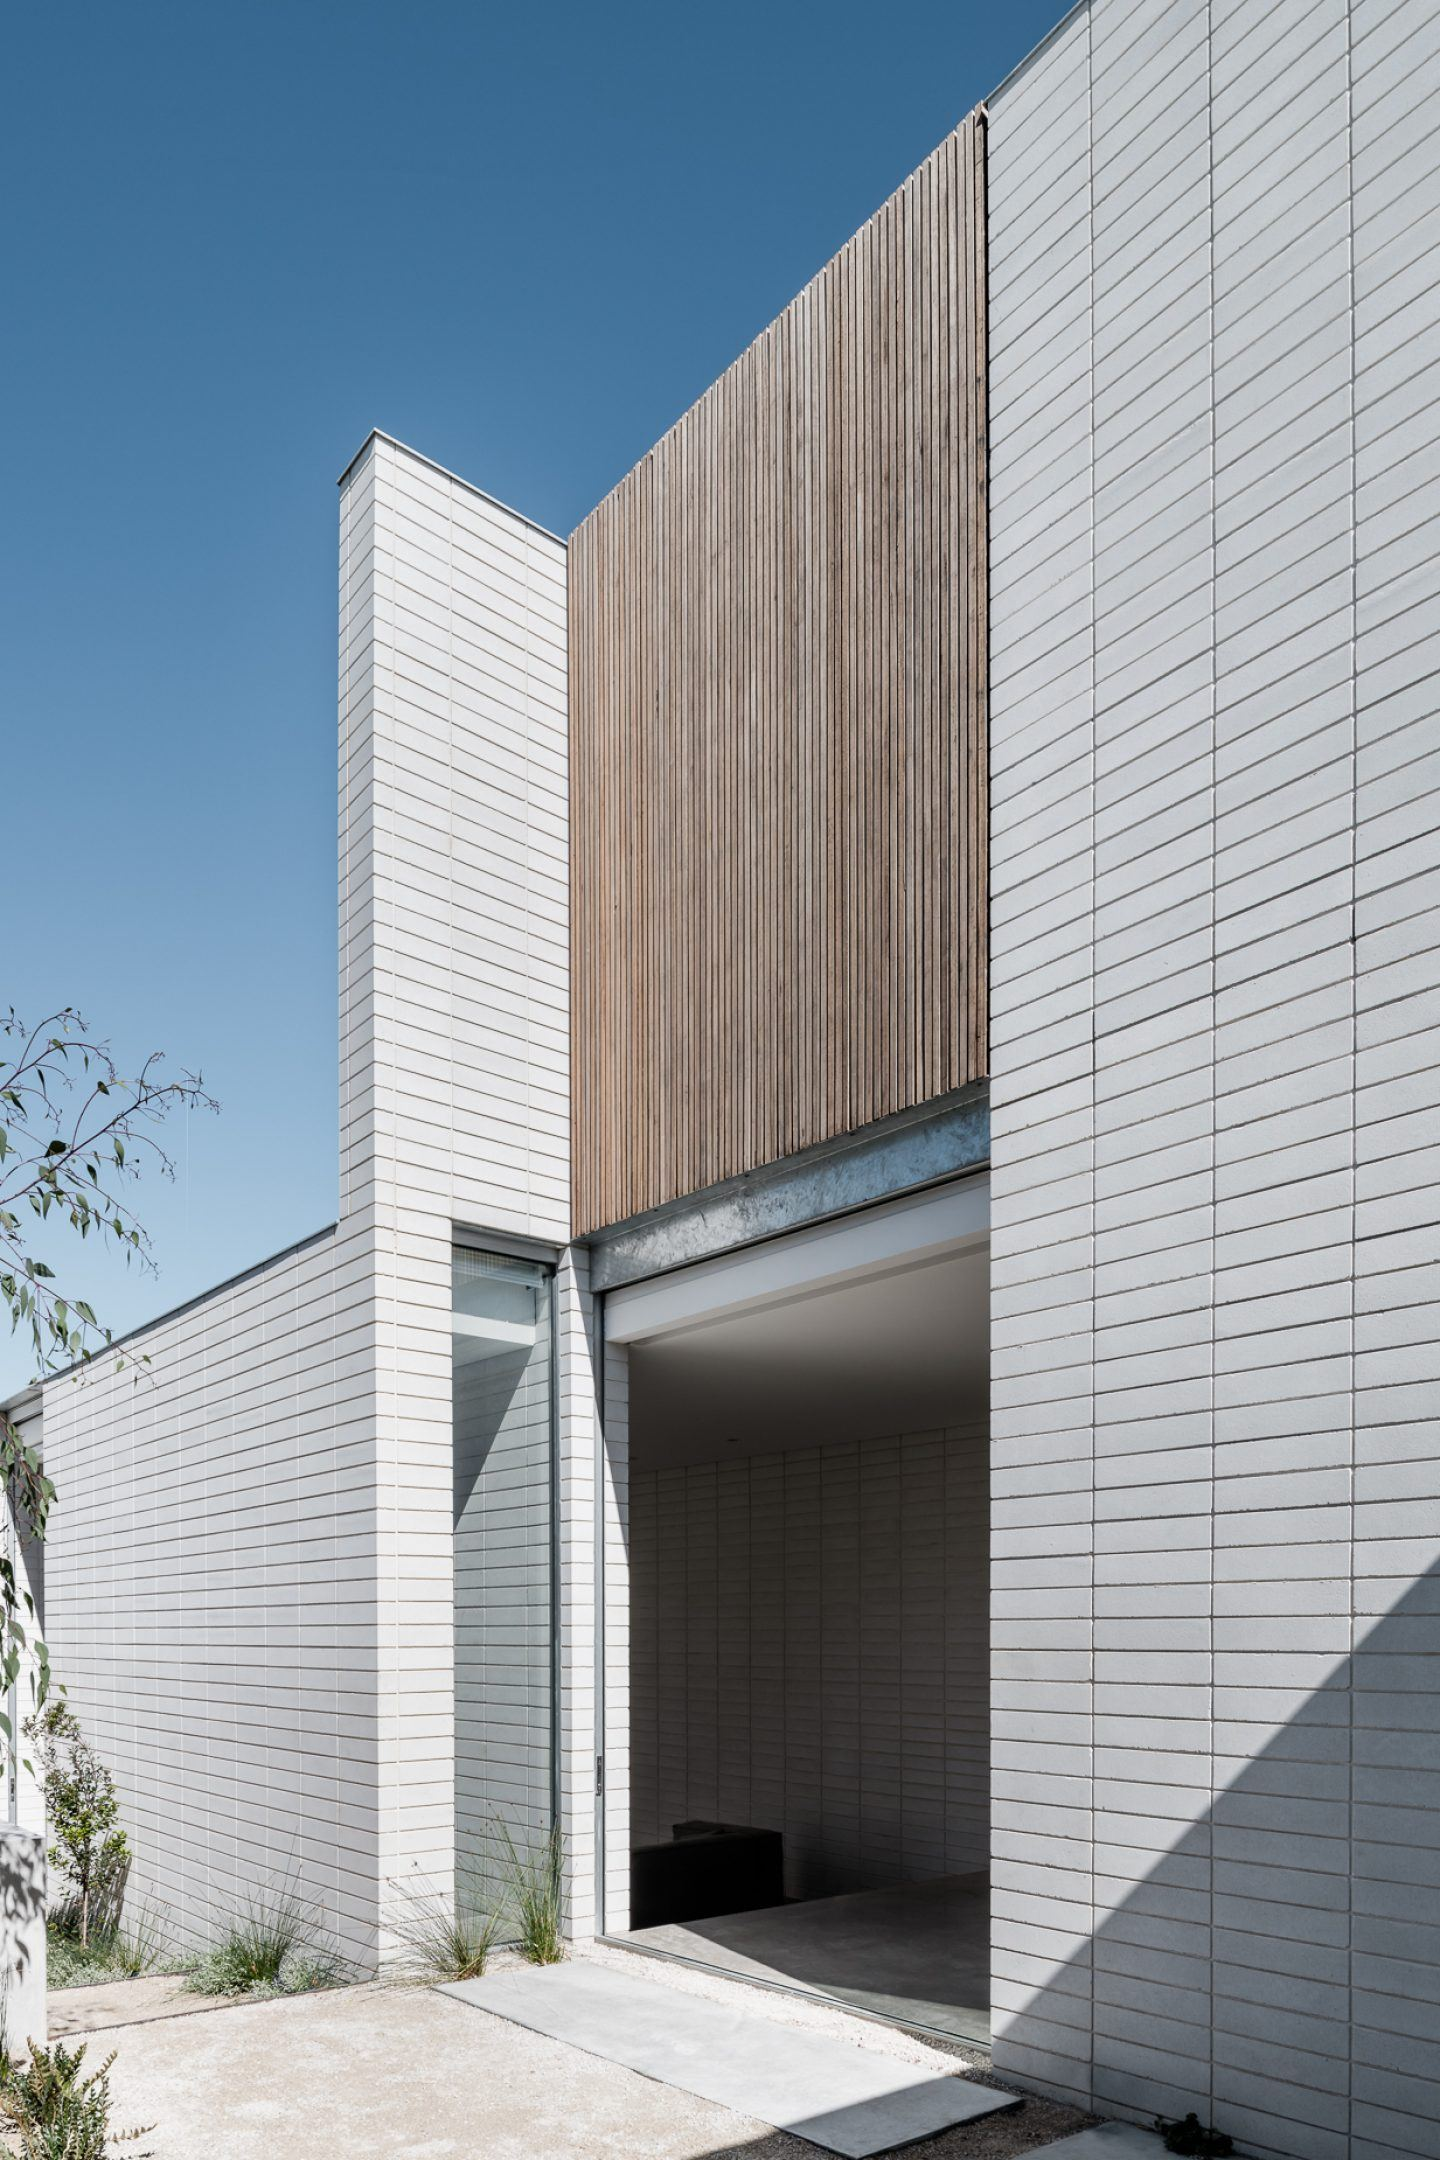 IGNANT-Architecture-Ritz-Ghougassian-Edsall-Street-01